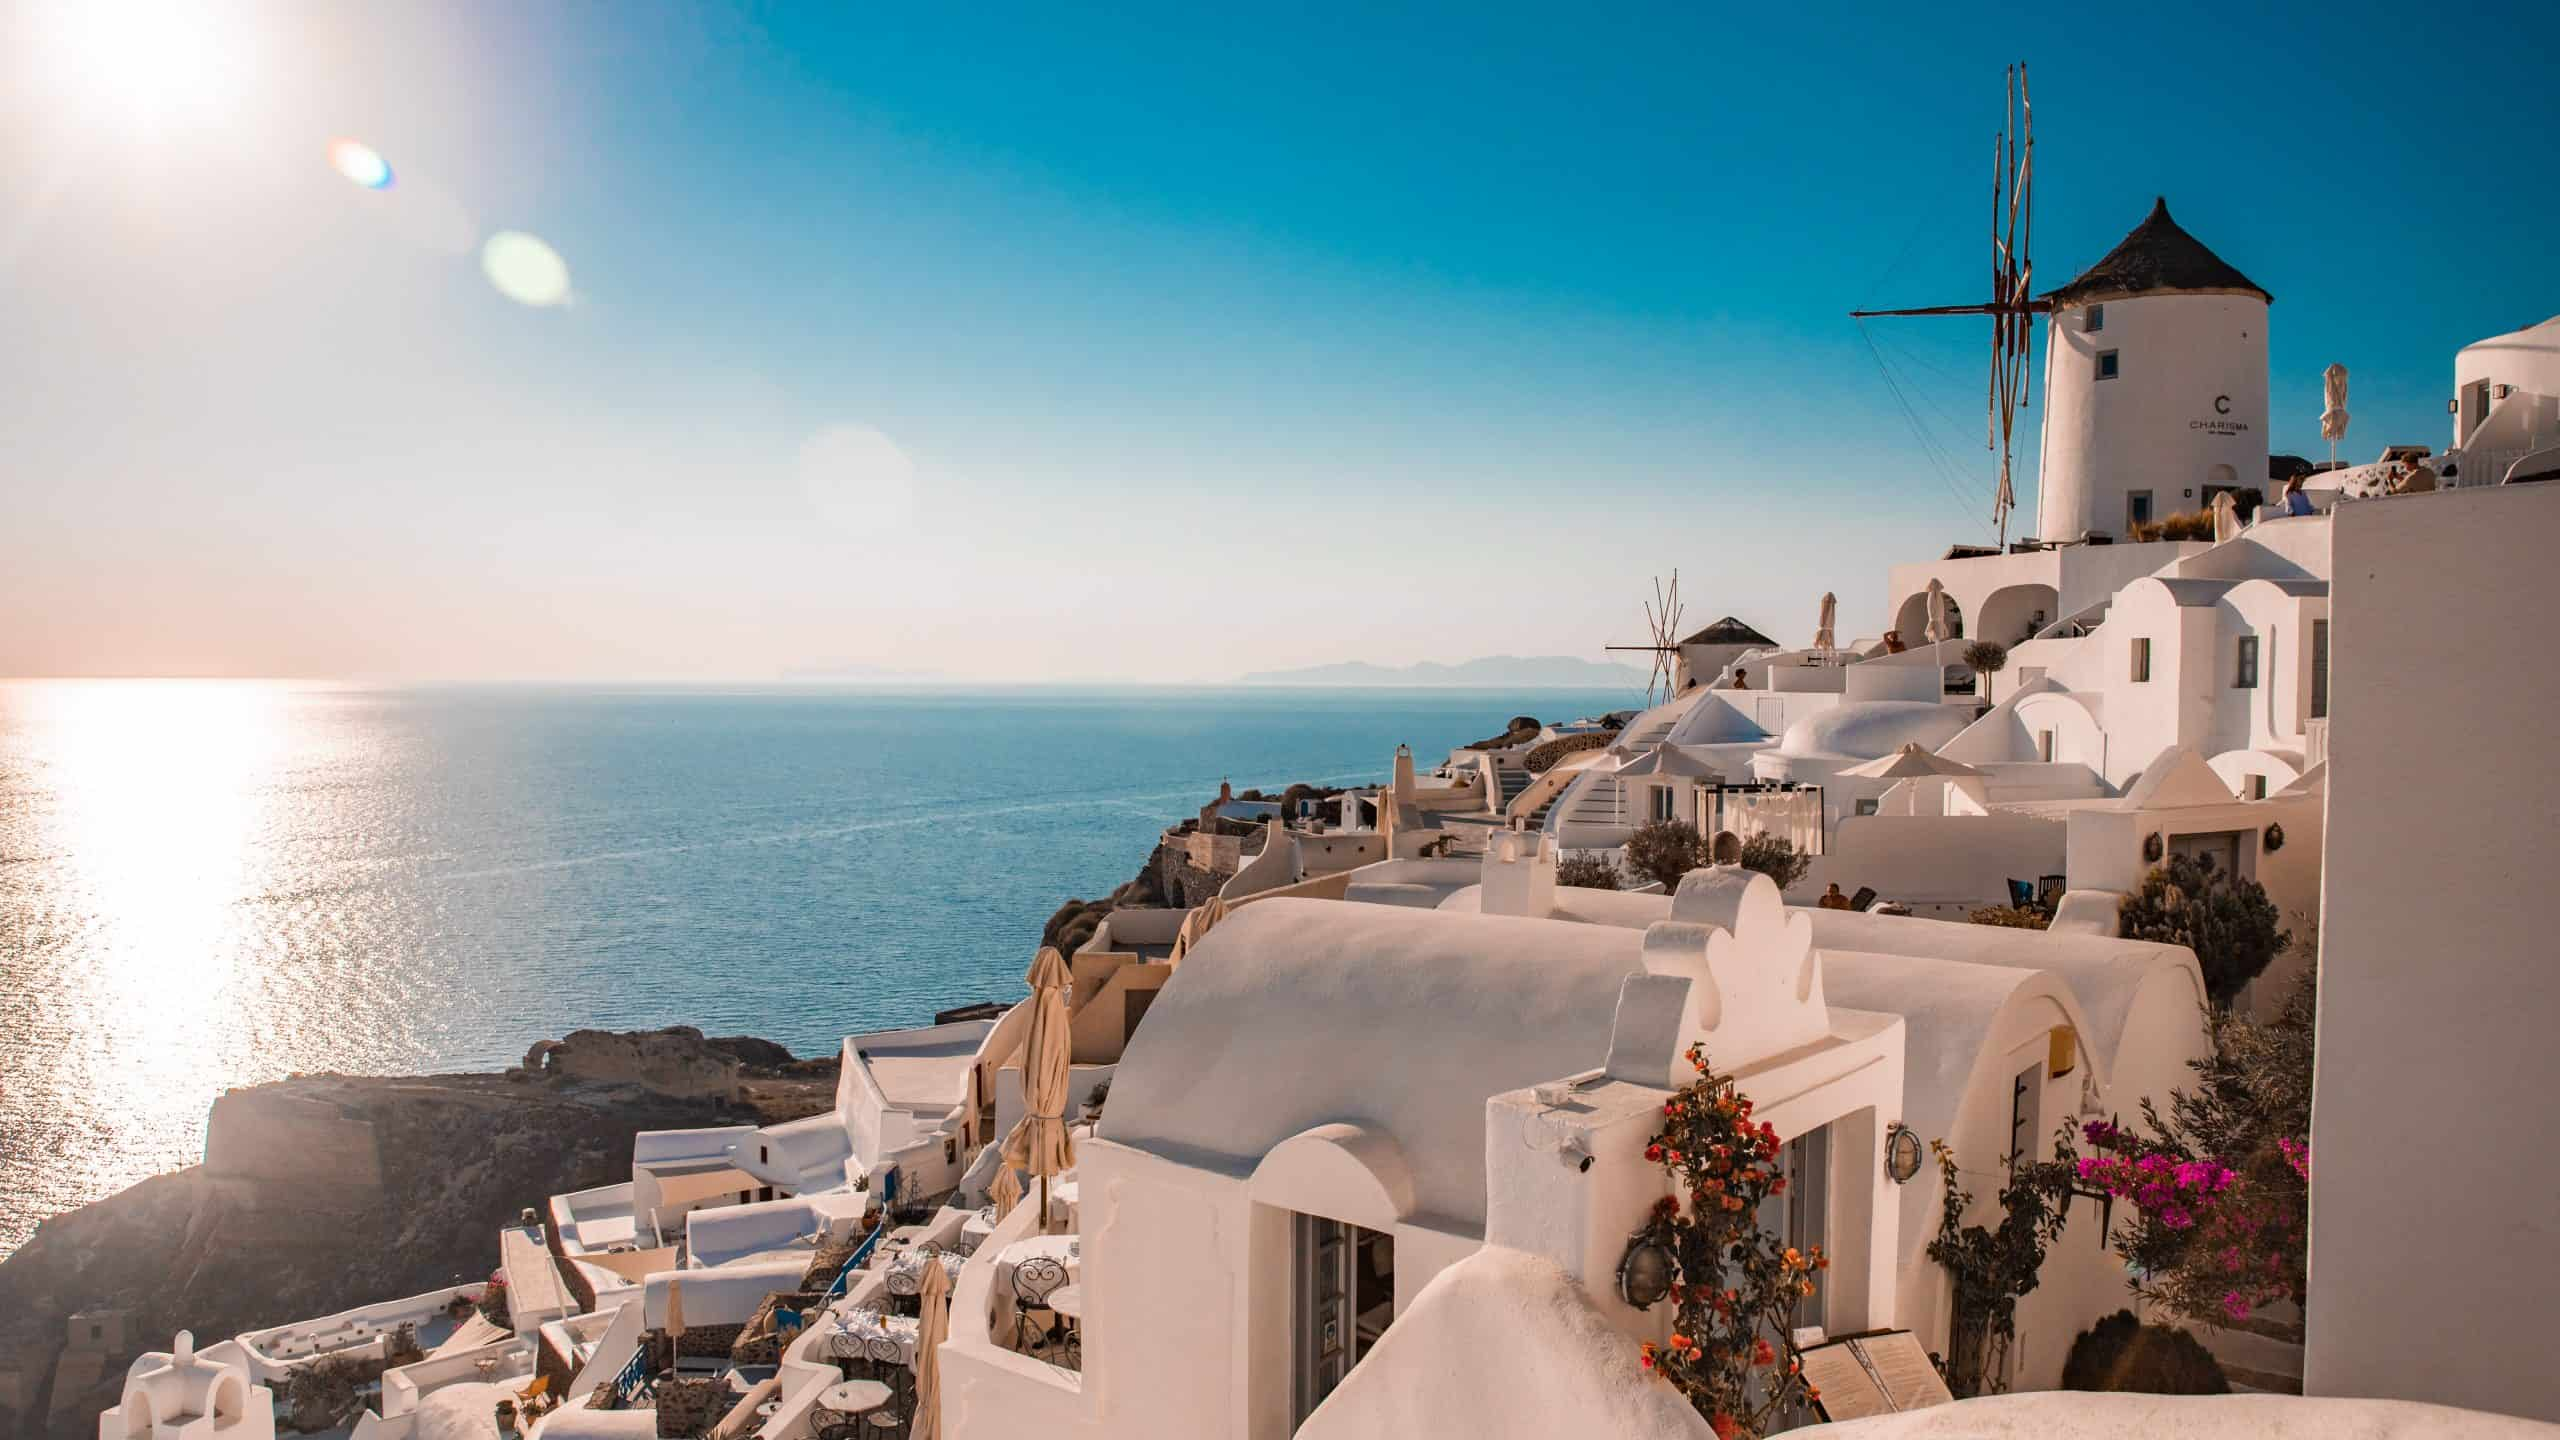 Greece Destination Guide